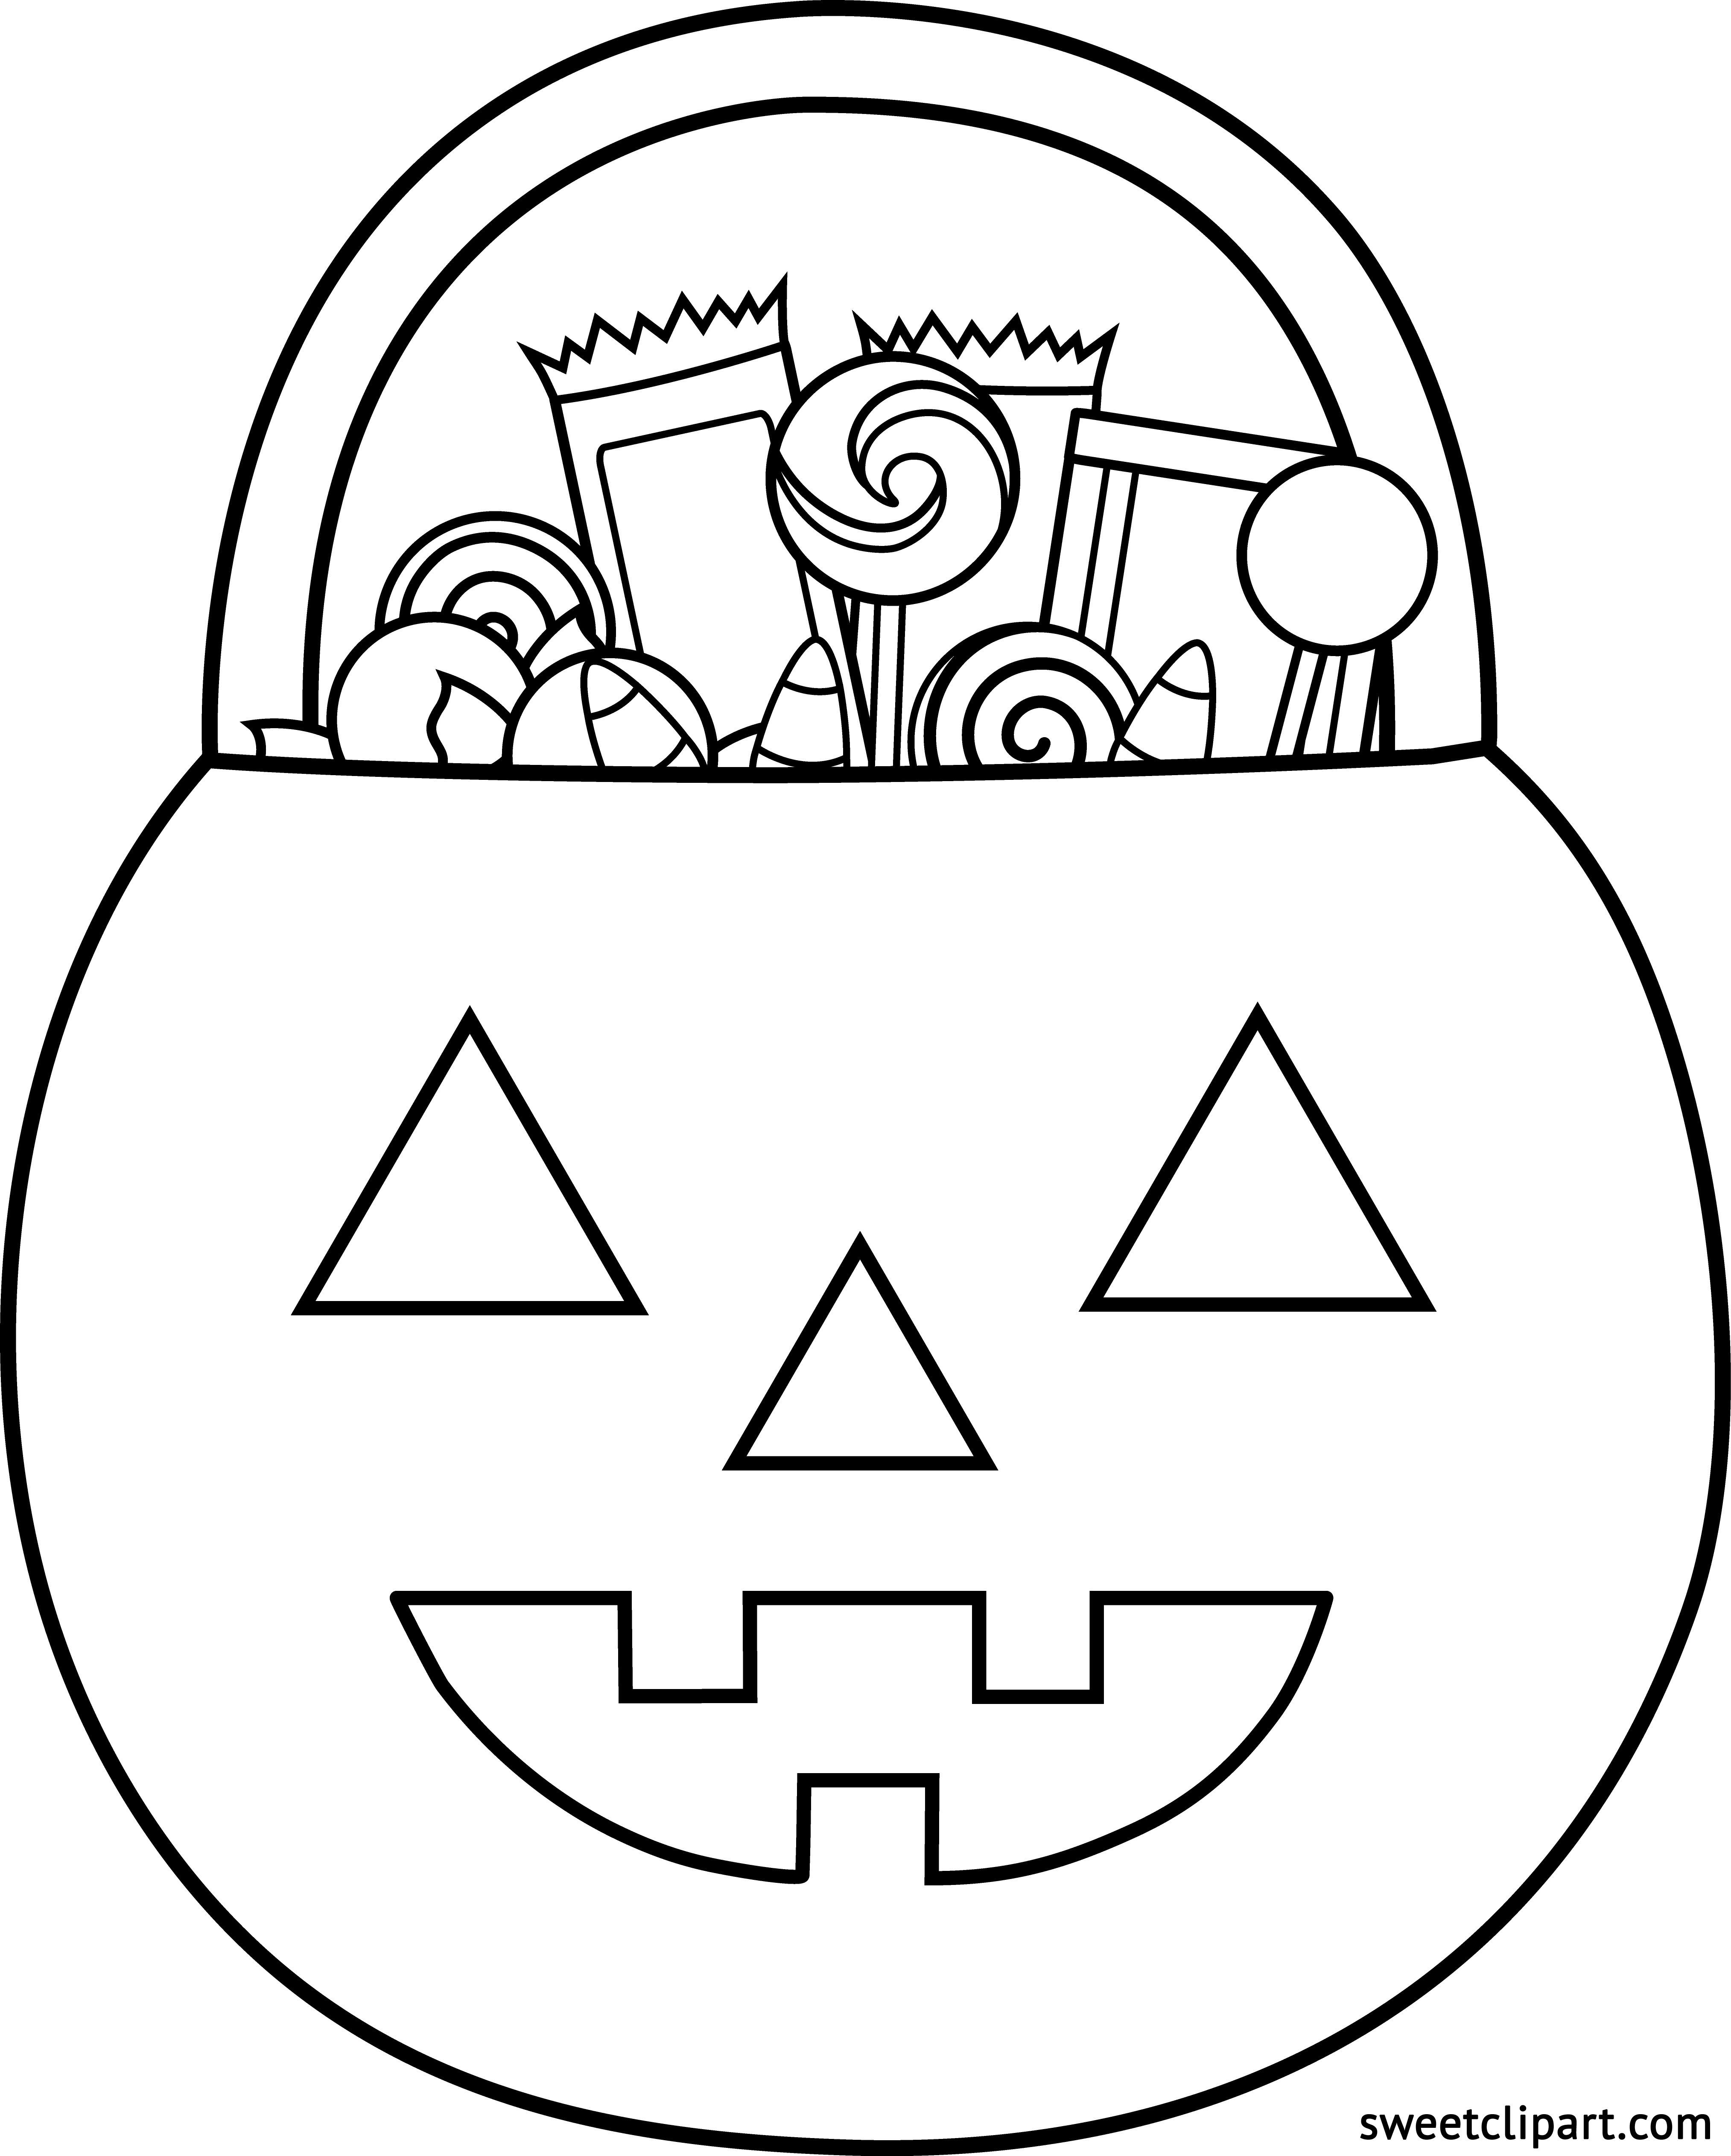 svg download Gumball machine clipart coloring sheet. Halloween pumpkin candy page